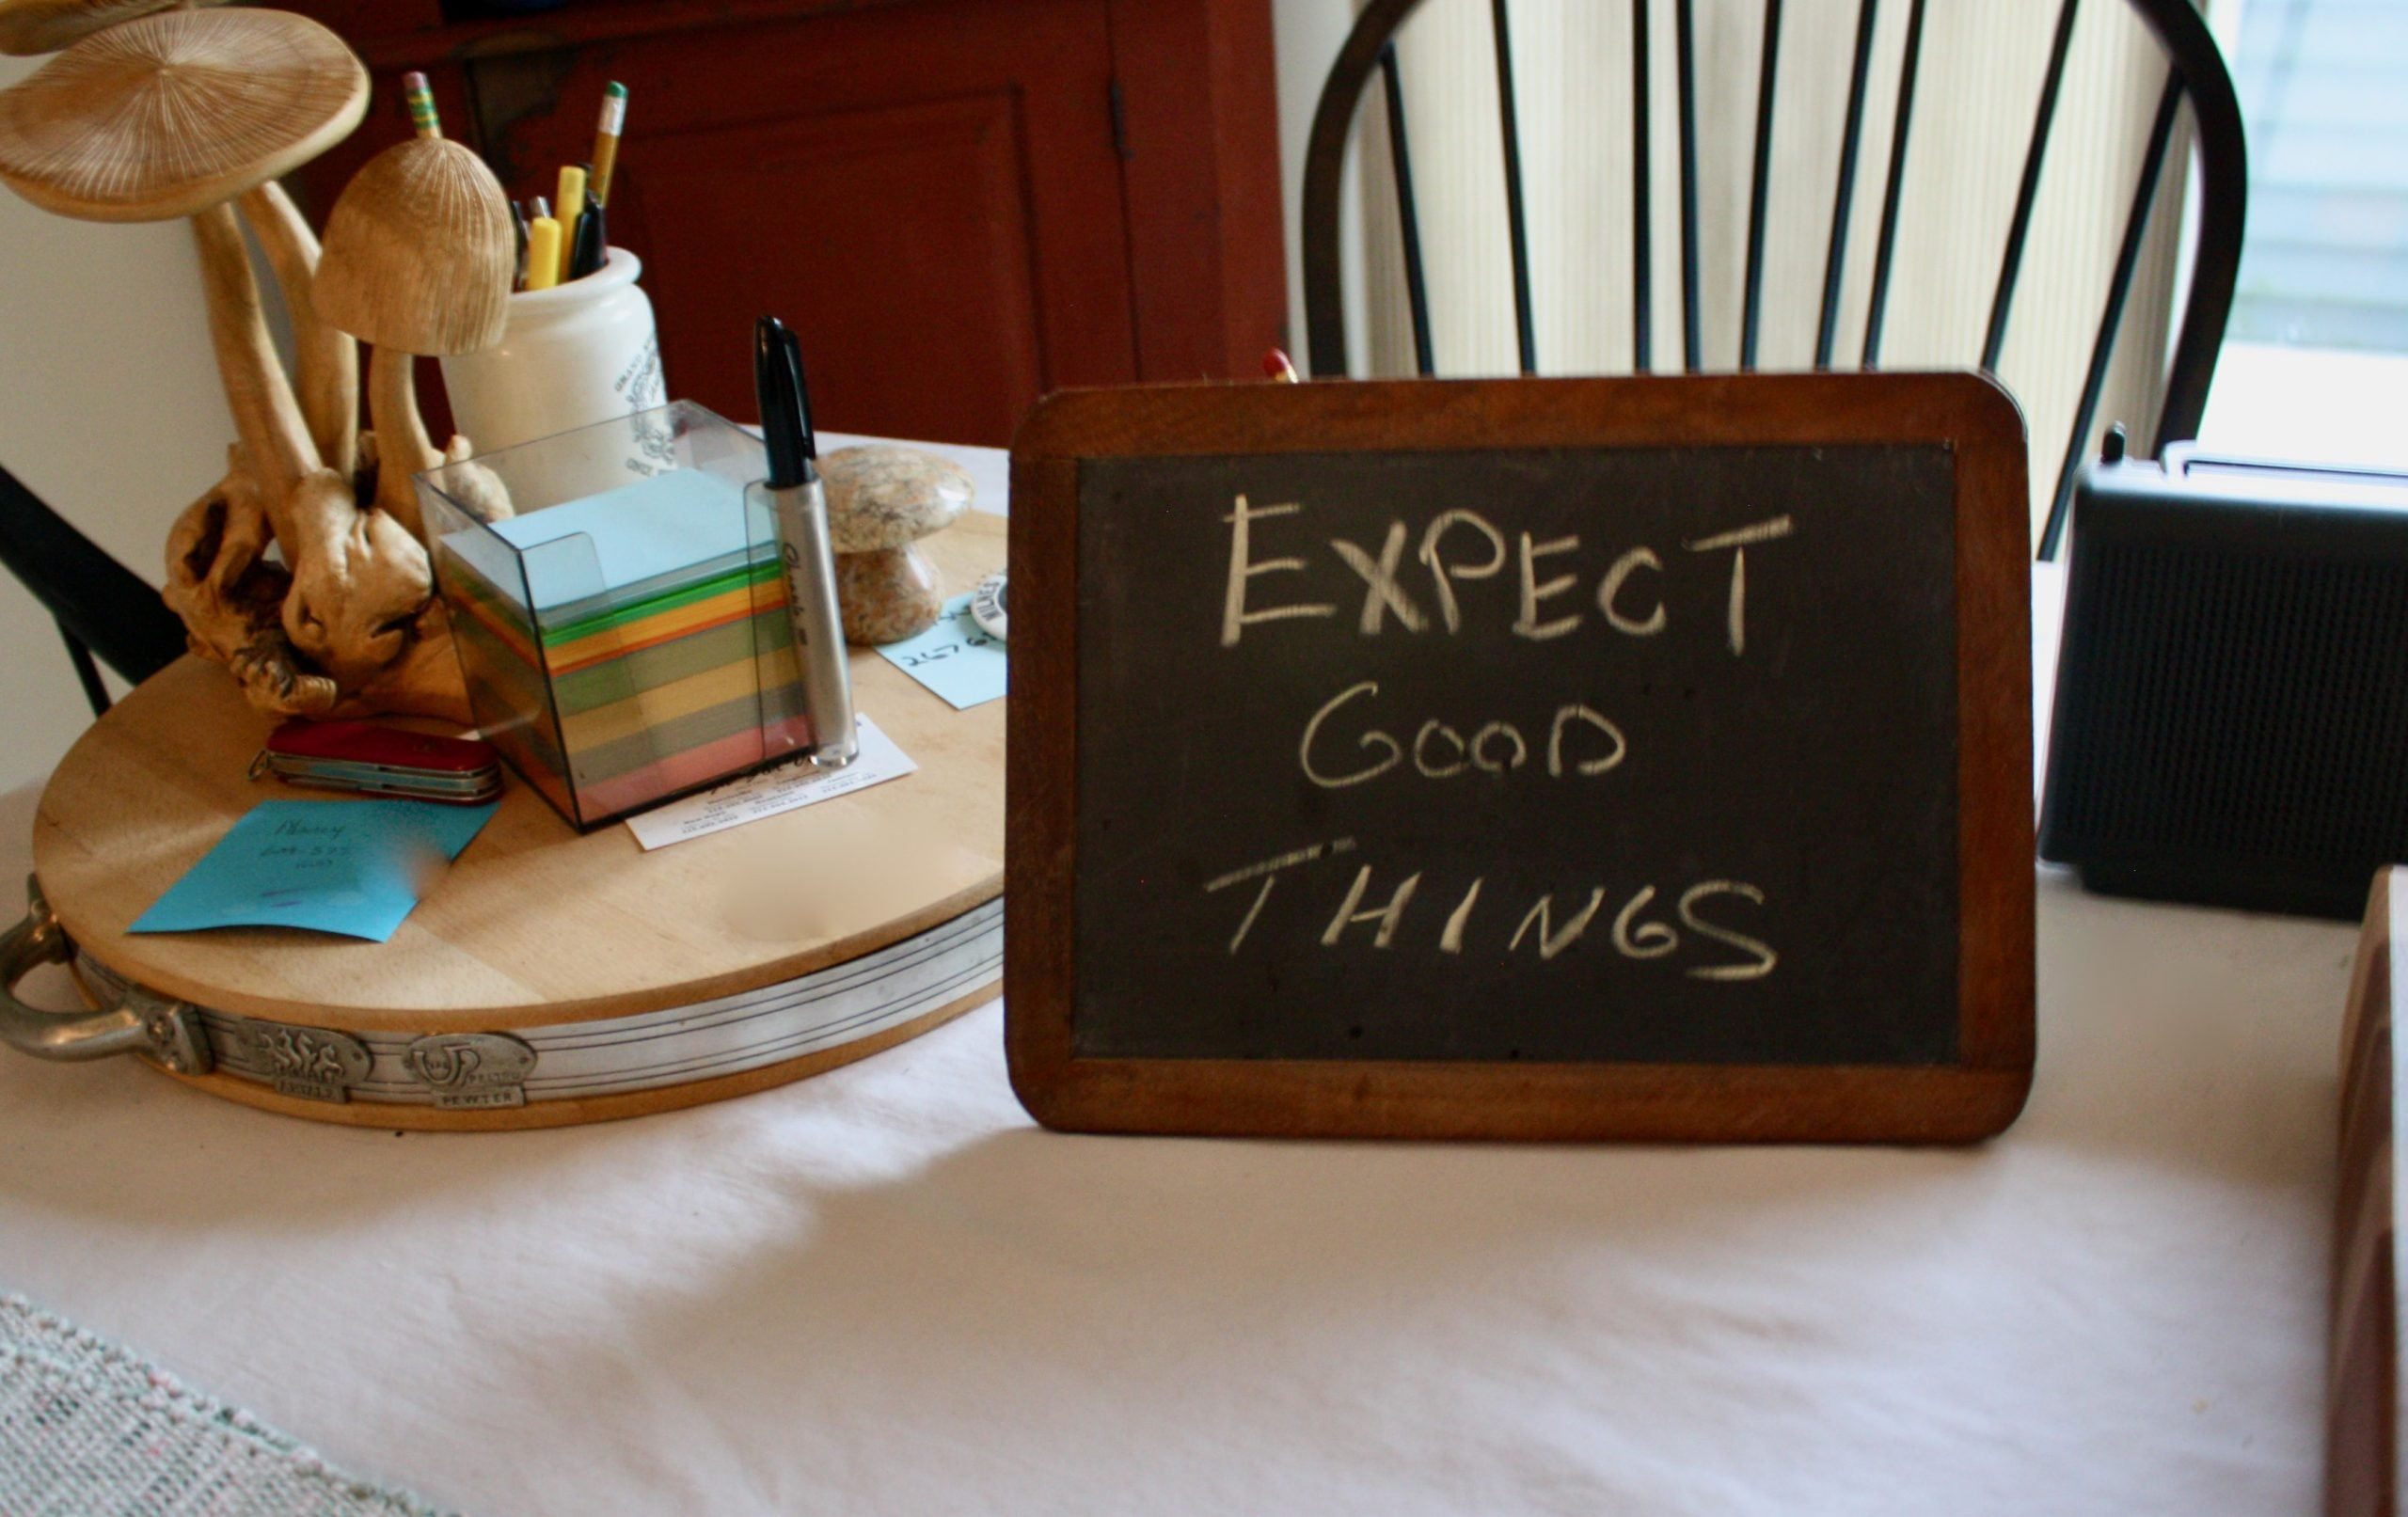 Expect Good Things Chalkboard Affirmations